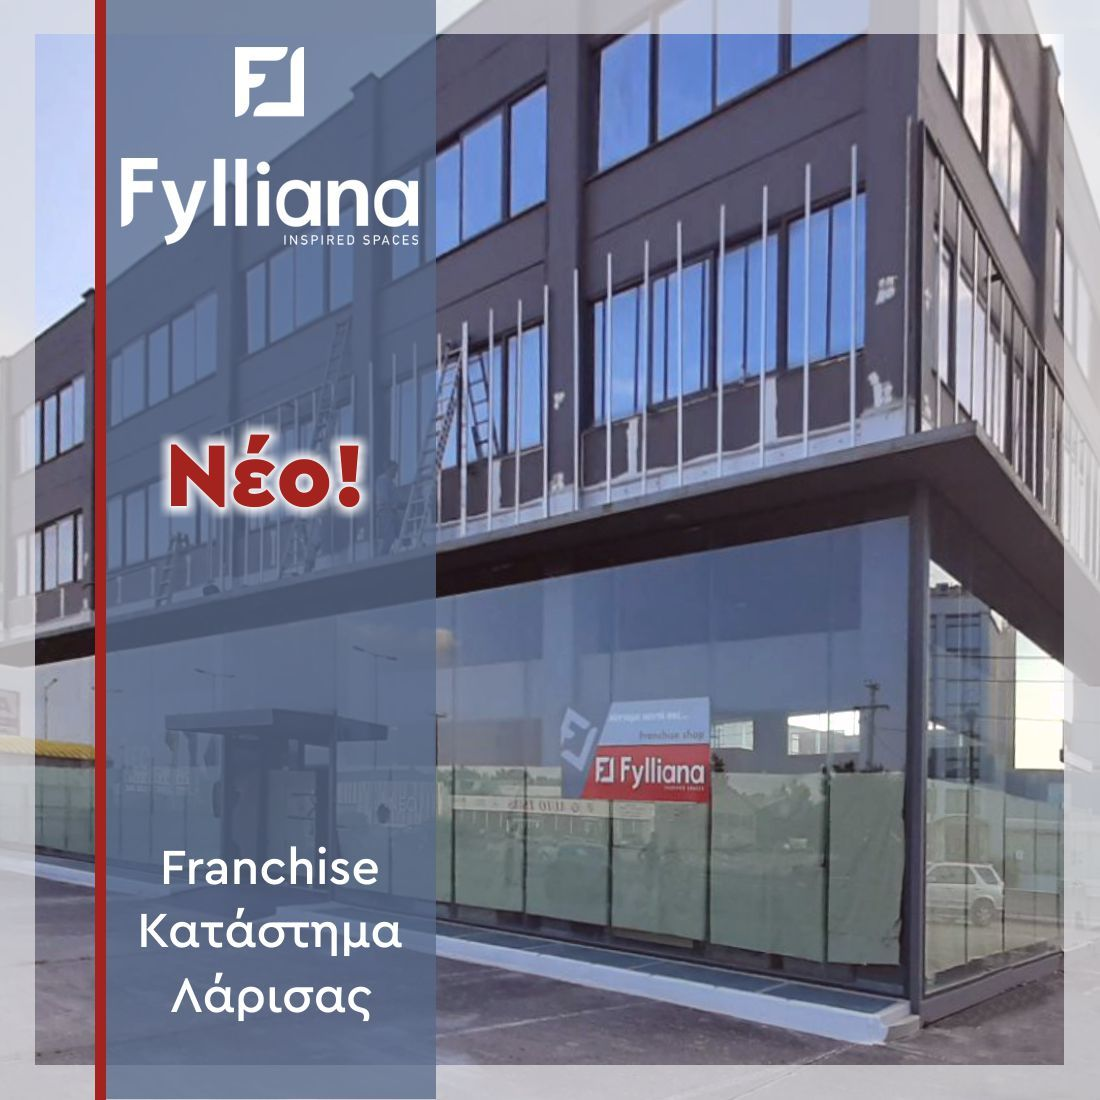 fylliana franchise 1